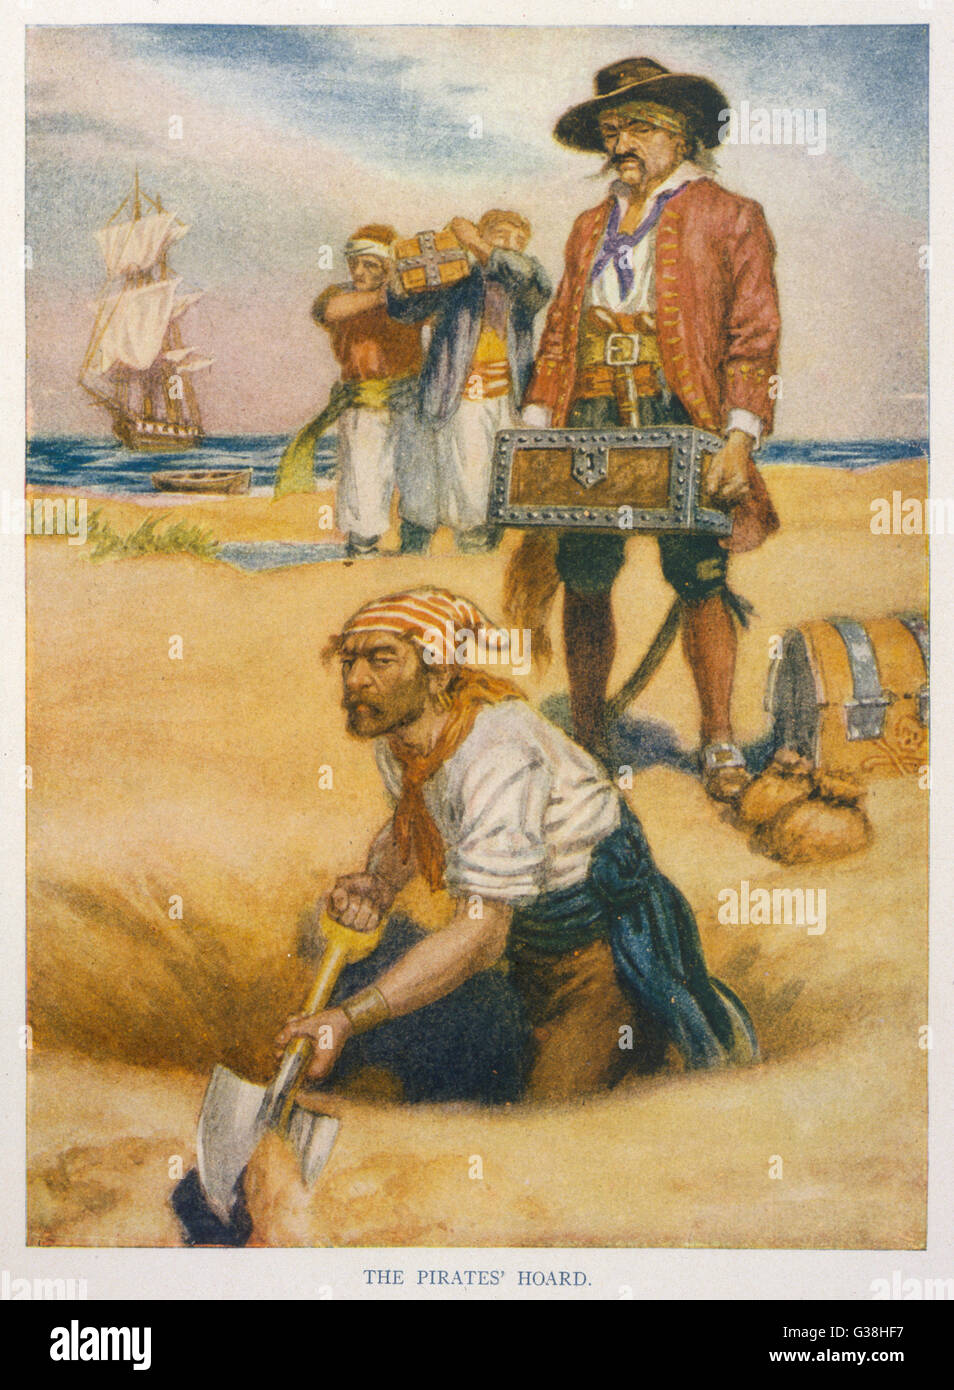 Pirates bury their  stolen loot         Date: 1913 - Stock Image